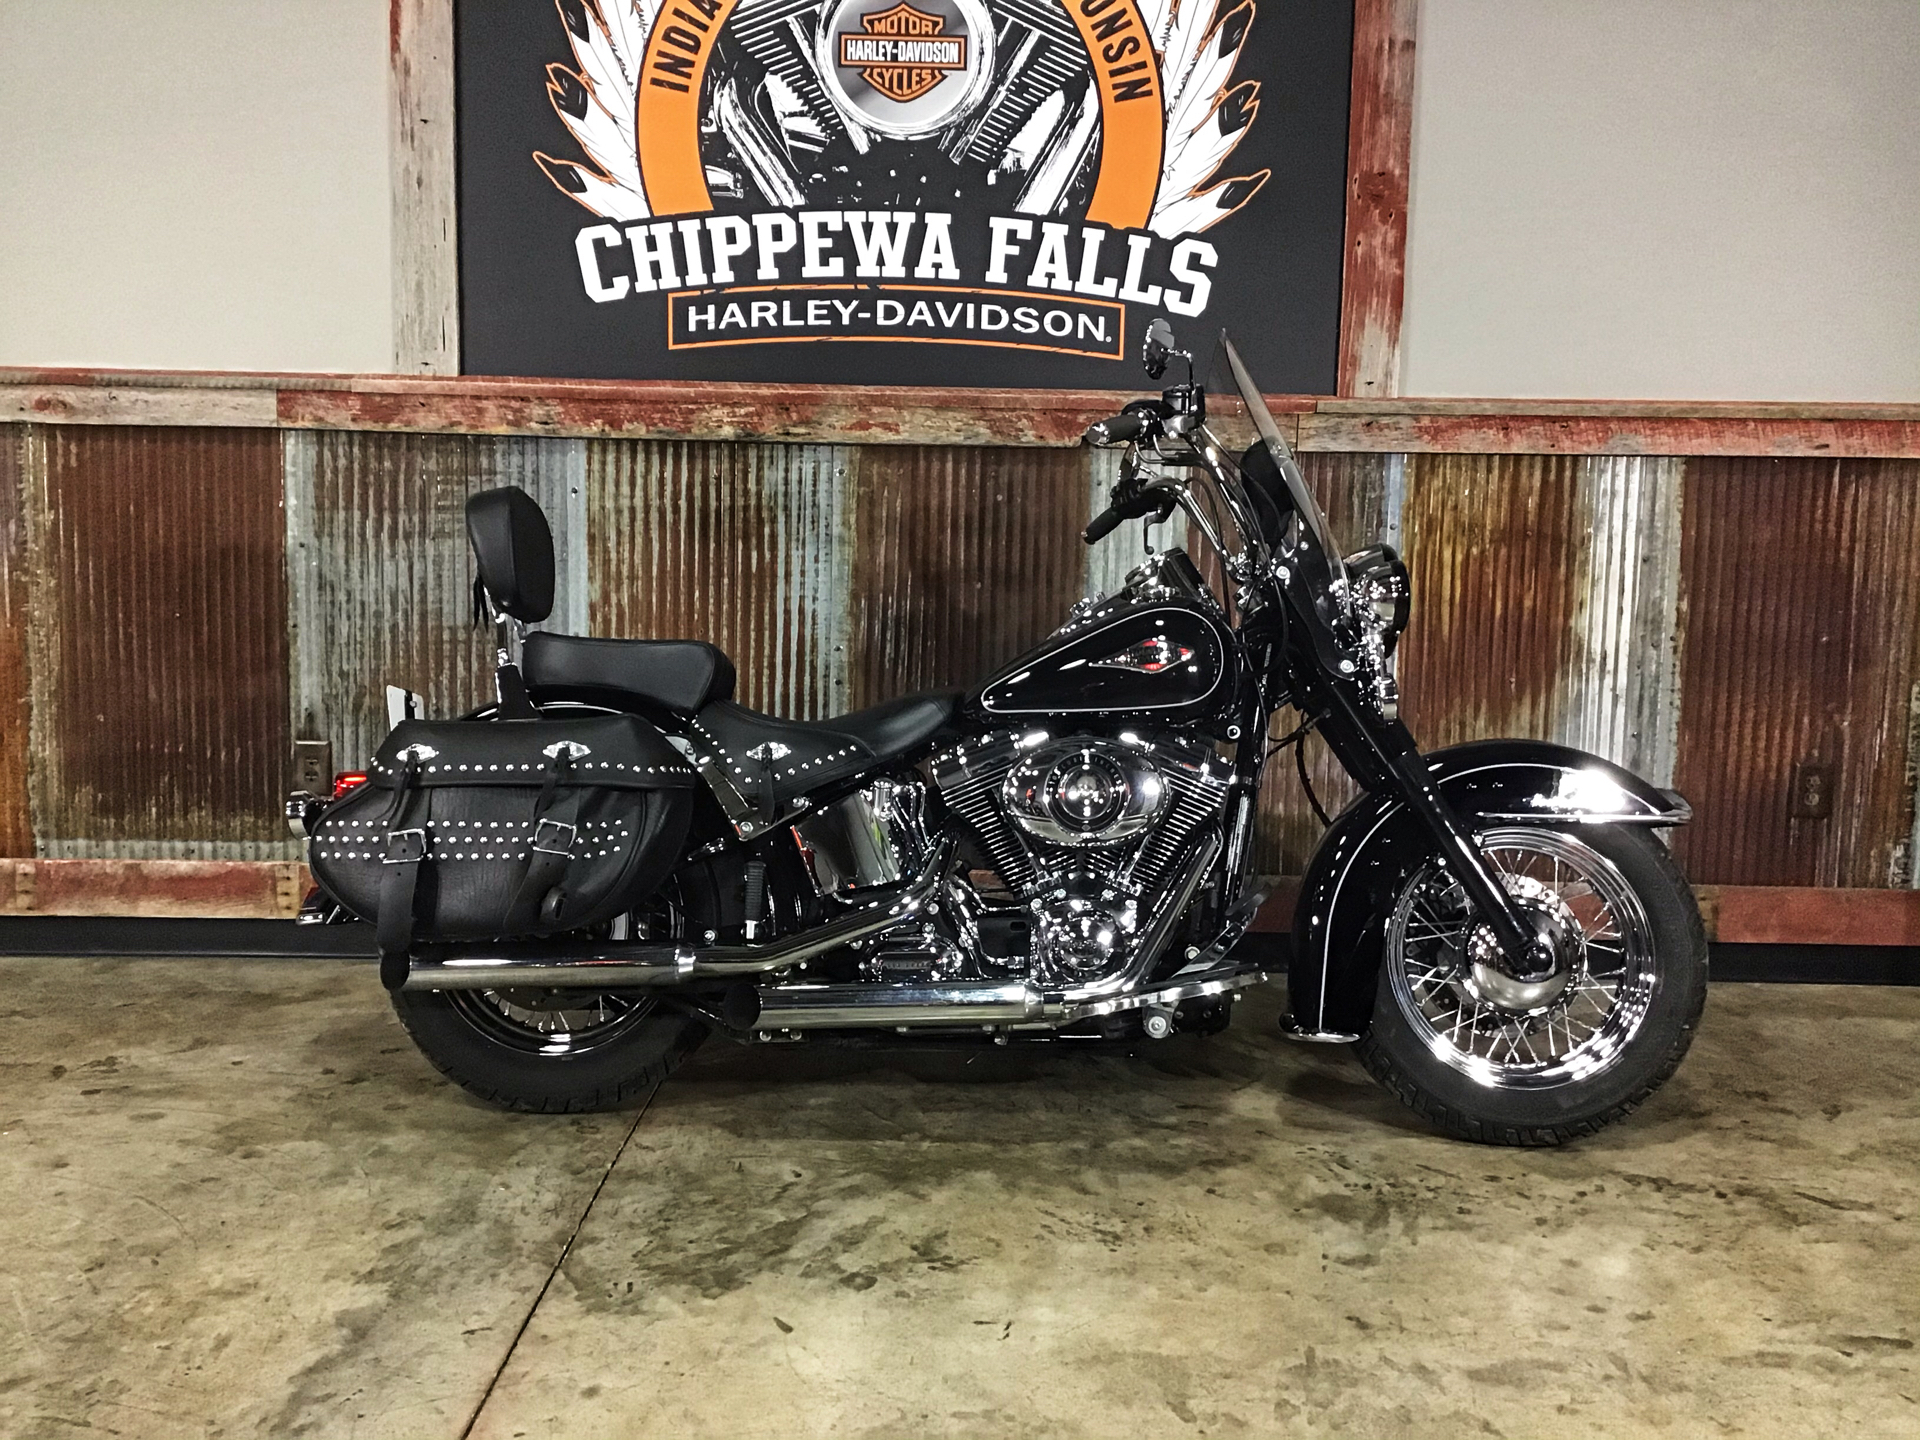 2014 Harley-Davidson Heritage Softail® Classic in Chippewa Falls, Wisconsin - Photo 1